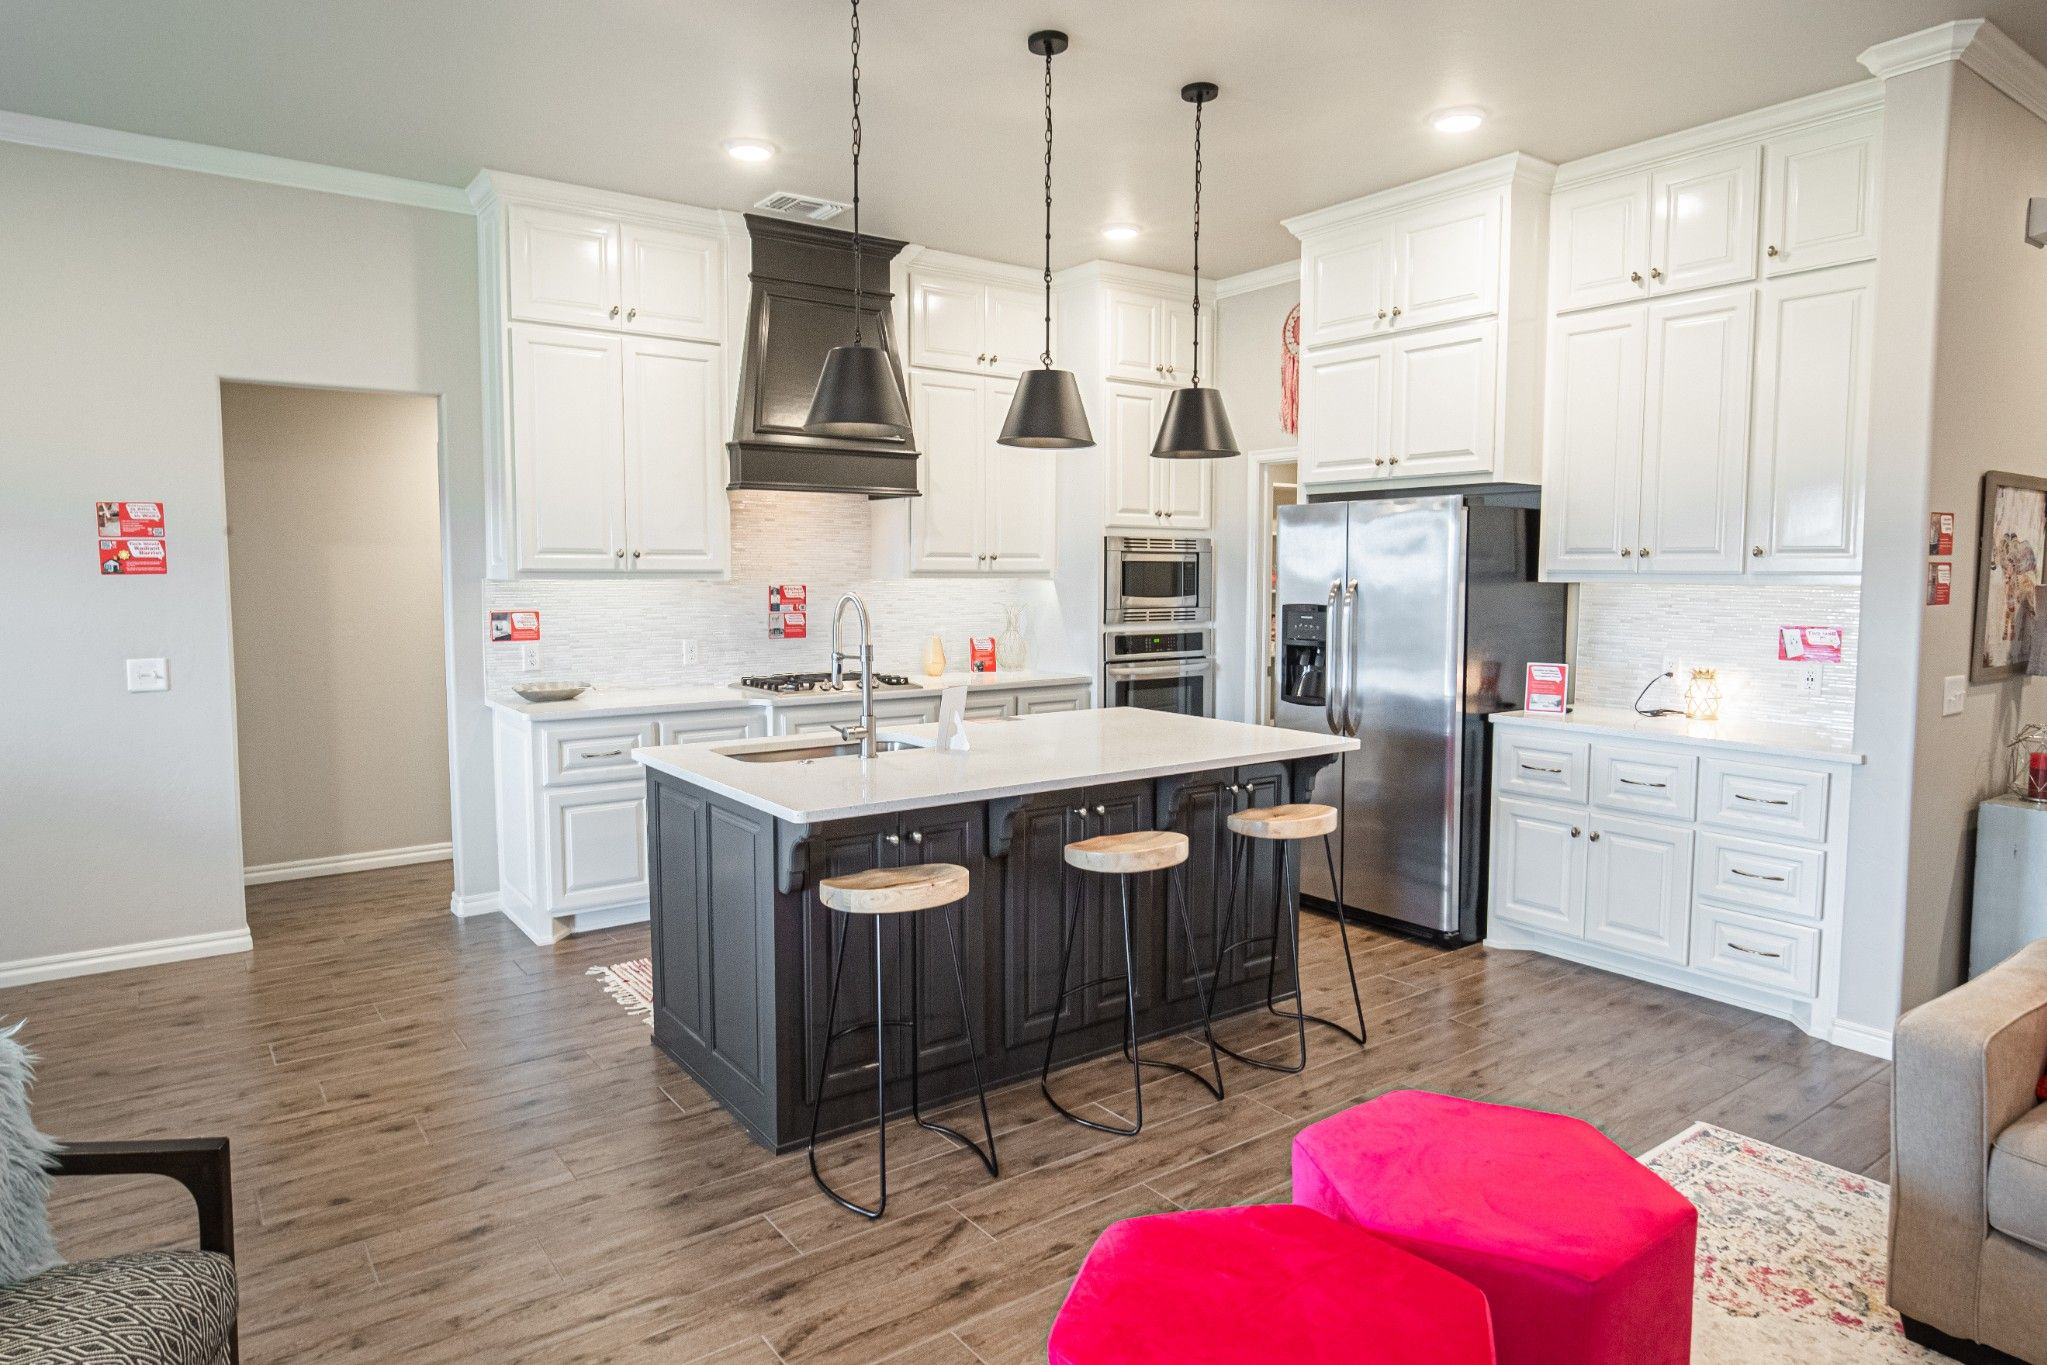 Kitchen featured in the Hummingbird Bonus Room 2 By Homes By Taber in Oklahoma City, OK